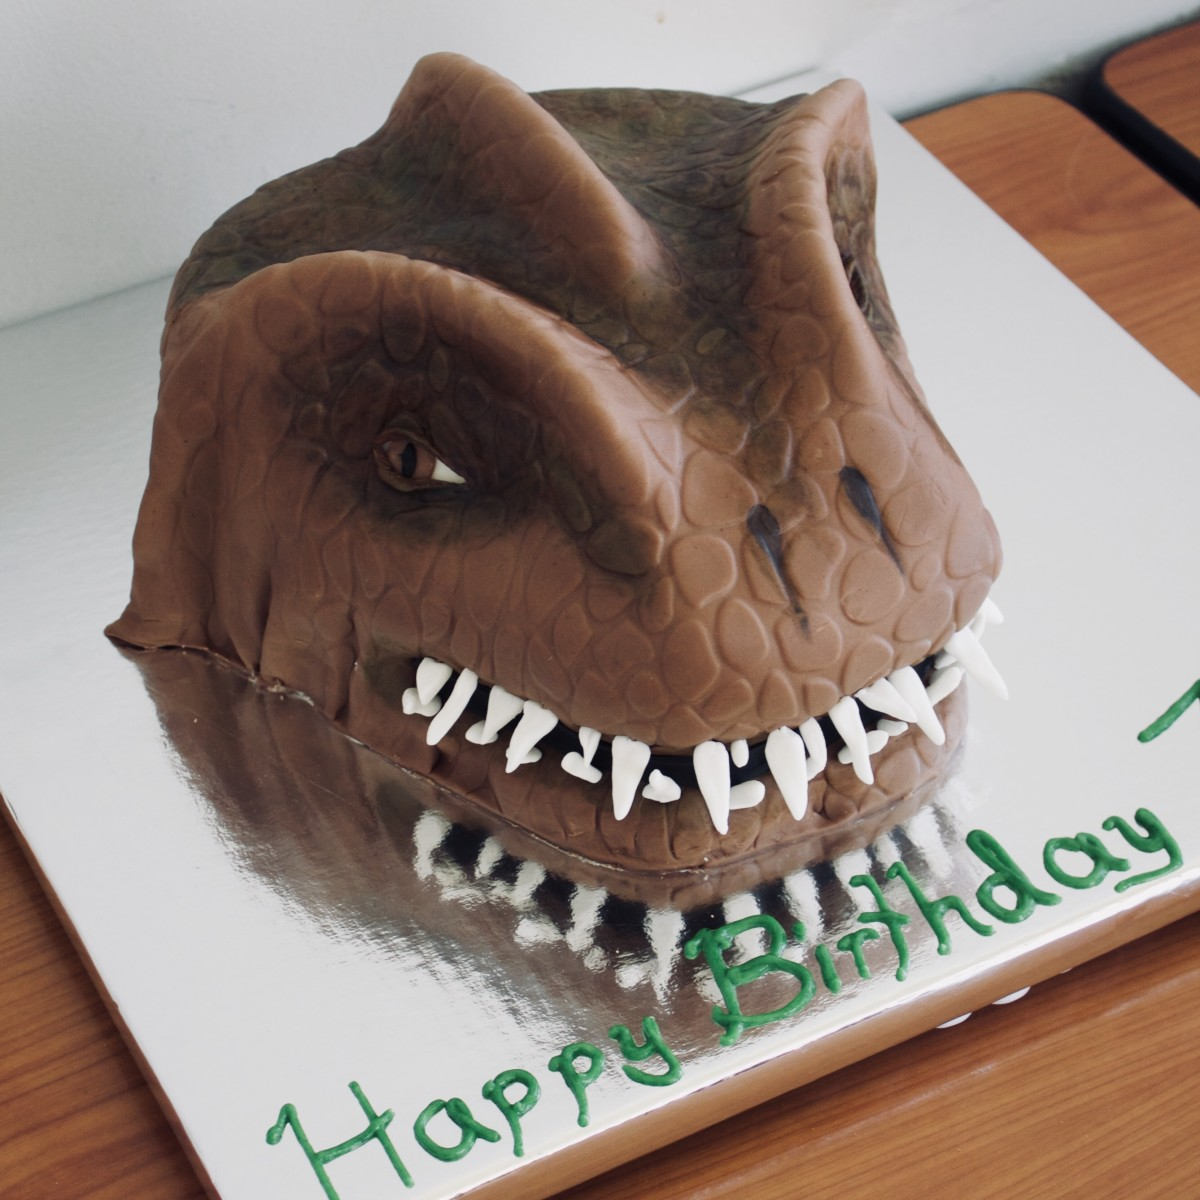 How to Make a Fondant Covered T-Rex Cake